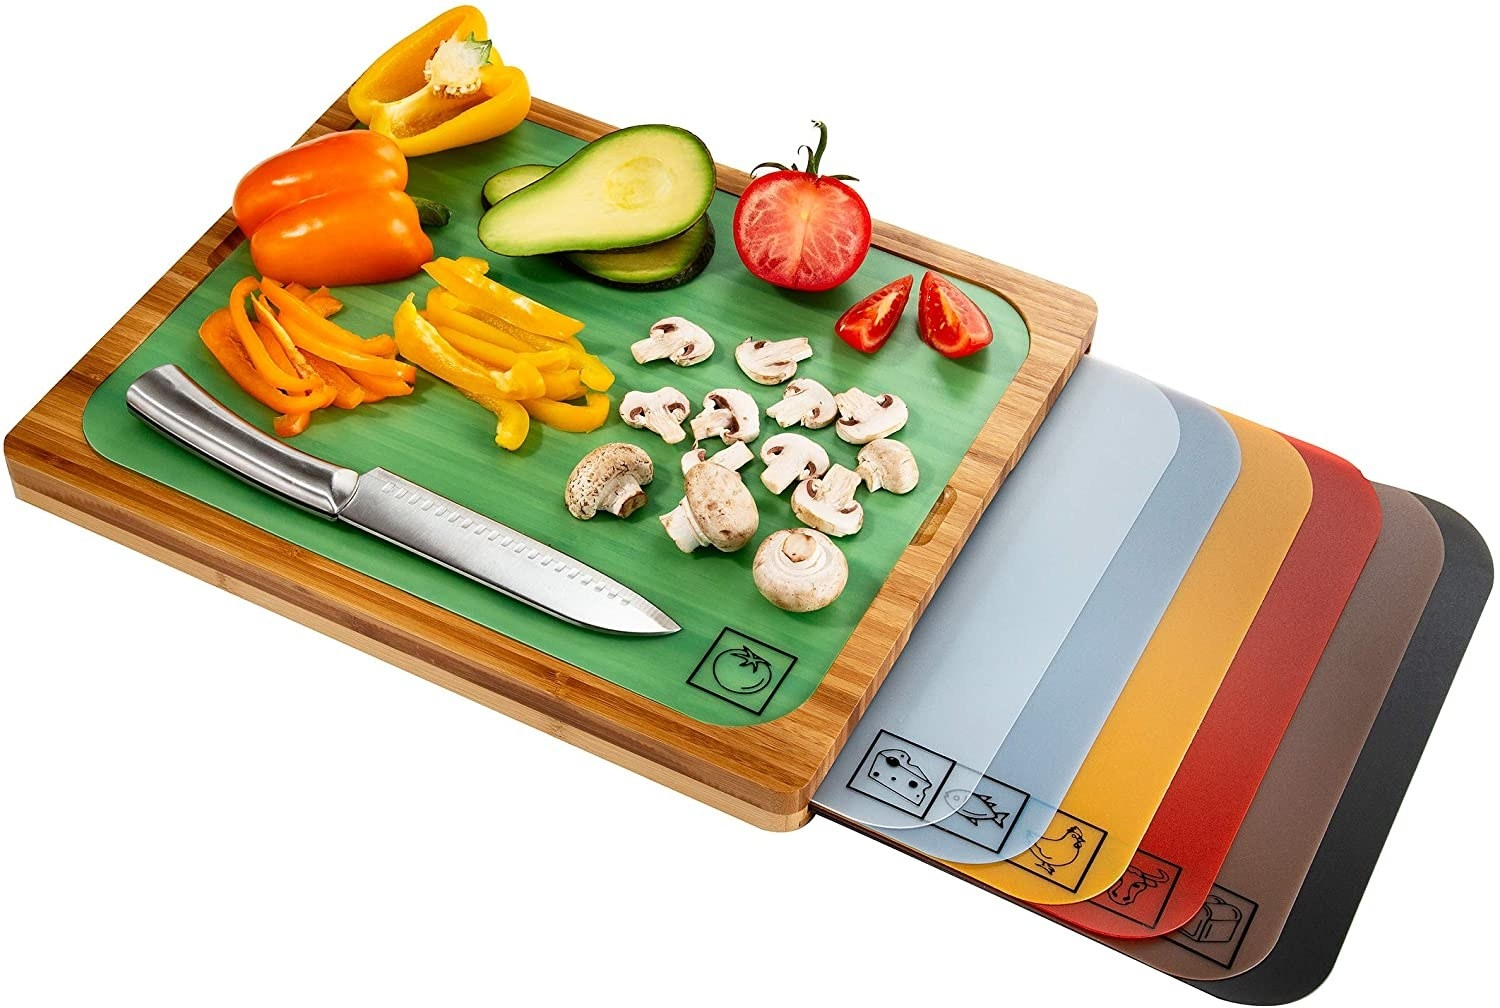 A bamboo cutting board with a green mat inserted on the top with a knife and vegetables on it next to six different colored mats each with a different food icon in the bottom right corner